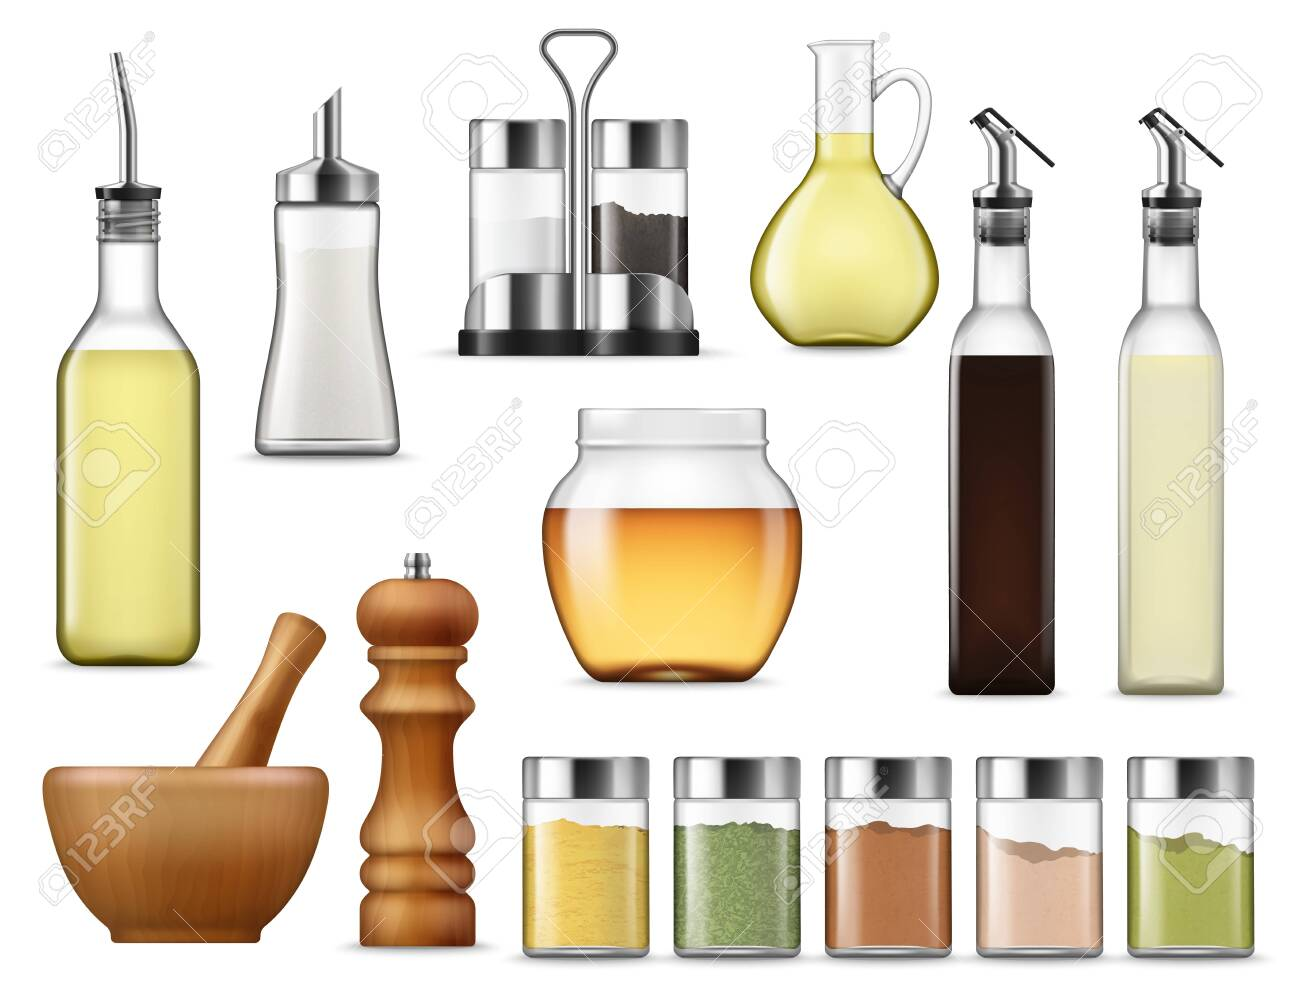 Salt and paper containers, glass jars with herb spices, vinegar pack isolated. Vector glass bottle of honey, seasoning racks and cooking oil. Sugar dispenser and oil carafe, salad dressing and sauces - 128162200